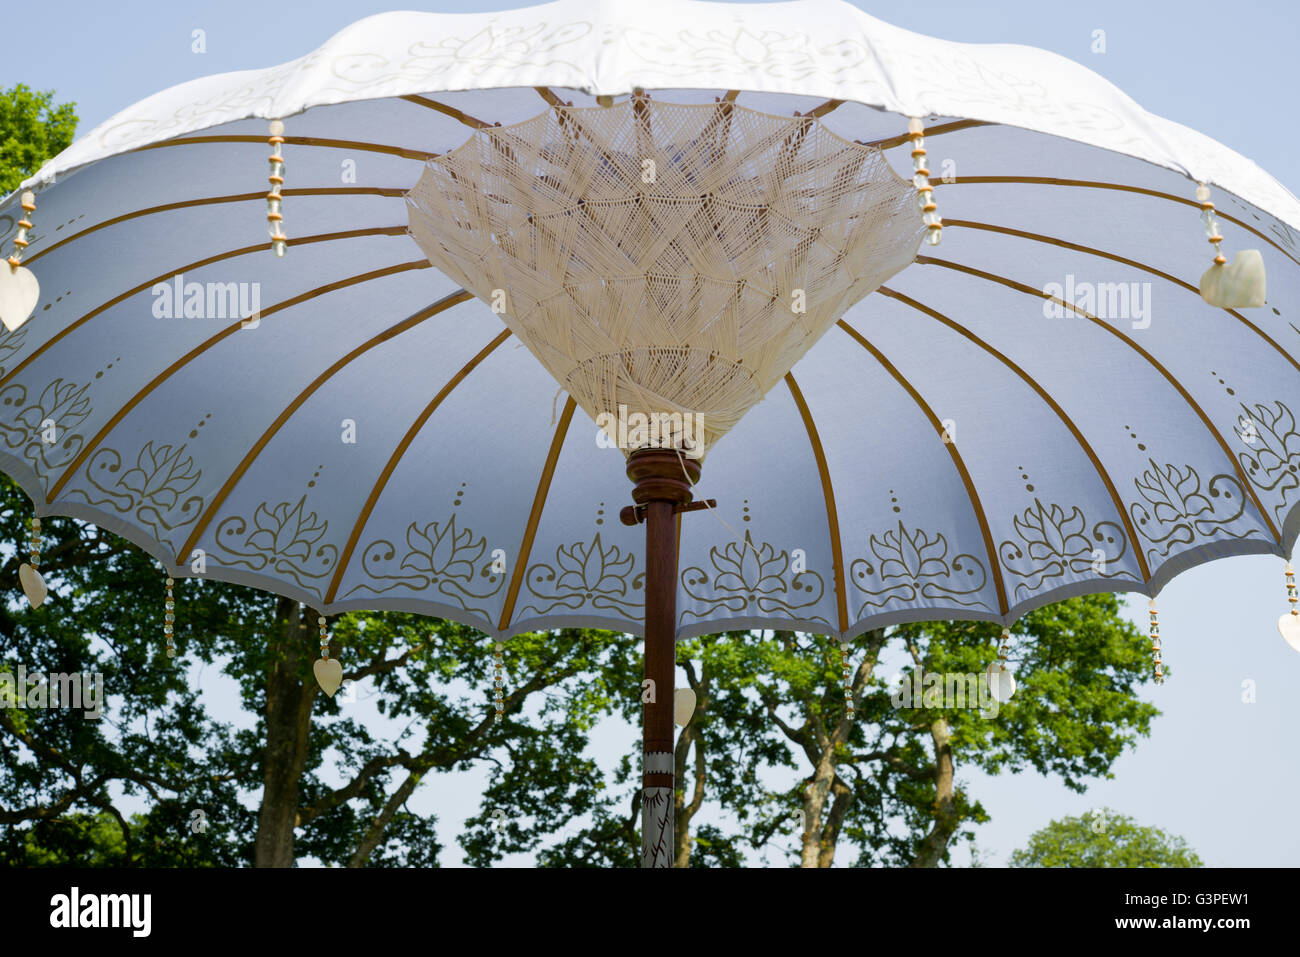 Garden sun umbrella or shade. Far Eastern decorative effects and shell hearts hanging pendants. - Stock Image